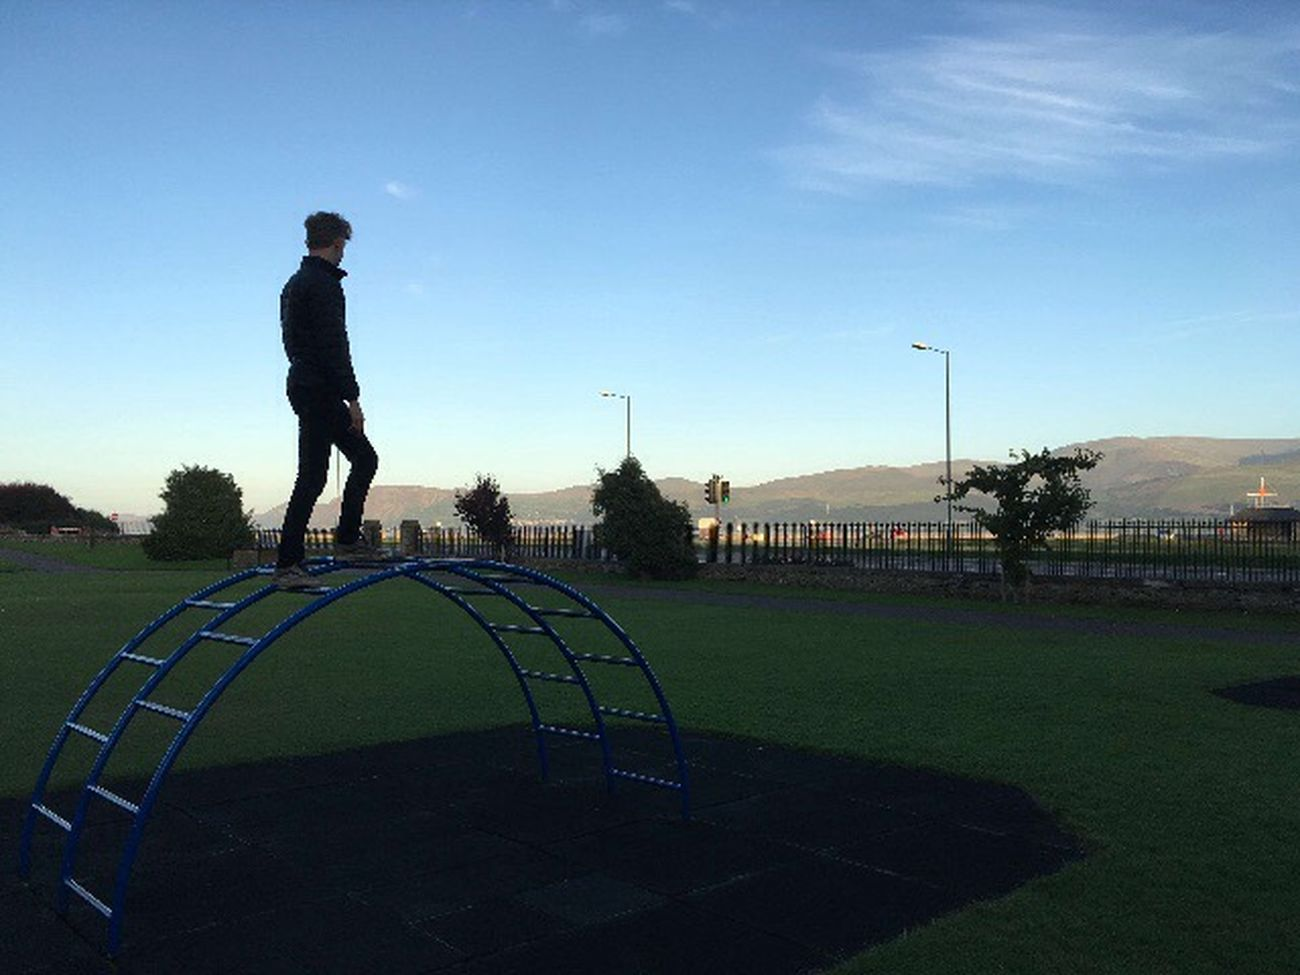 Leisure Activity Full Length Playing Lifestyles Men RISK Sky Park - Man Made Space Clear Sky Outdoors Enjoyment Field Fun Day Blue Mountain Carefree Competitive Sport